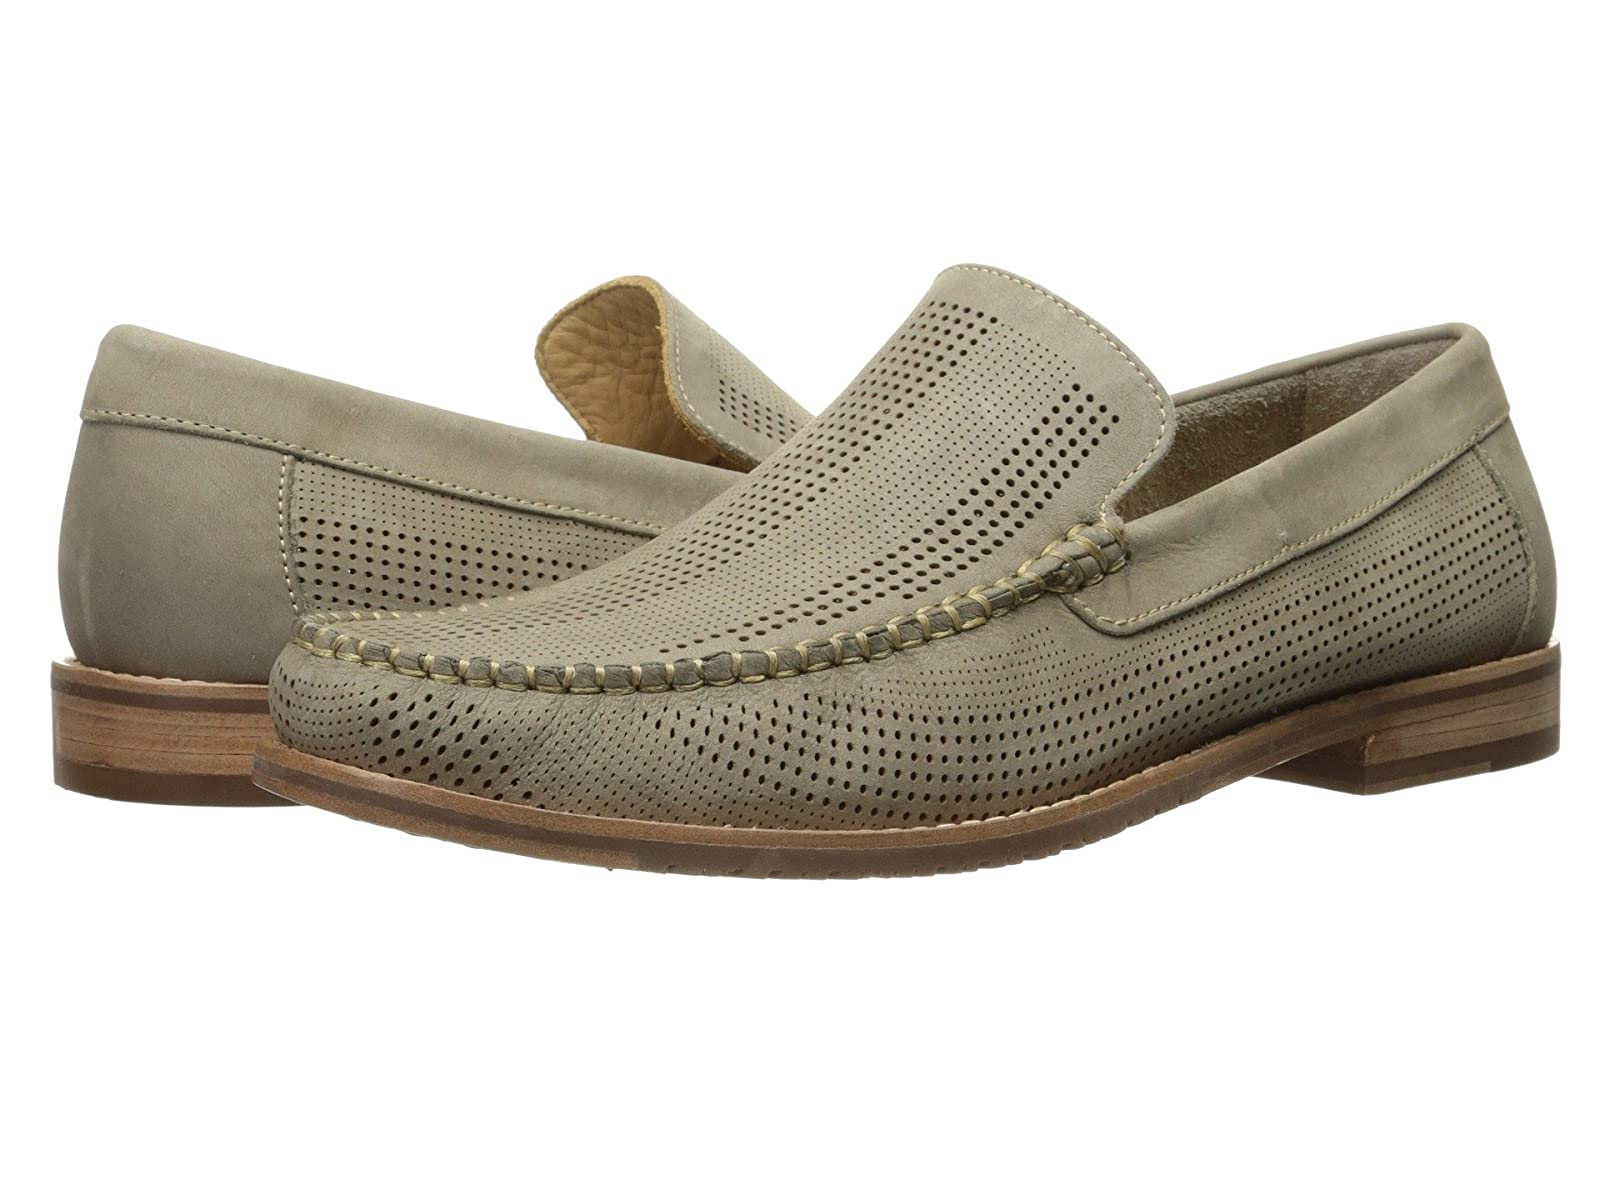 Tommy Bahama FeltonCheap and distinctive eye-catching shoes